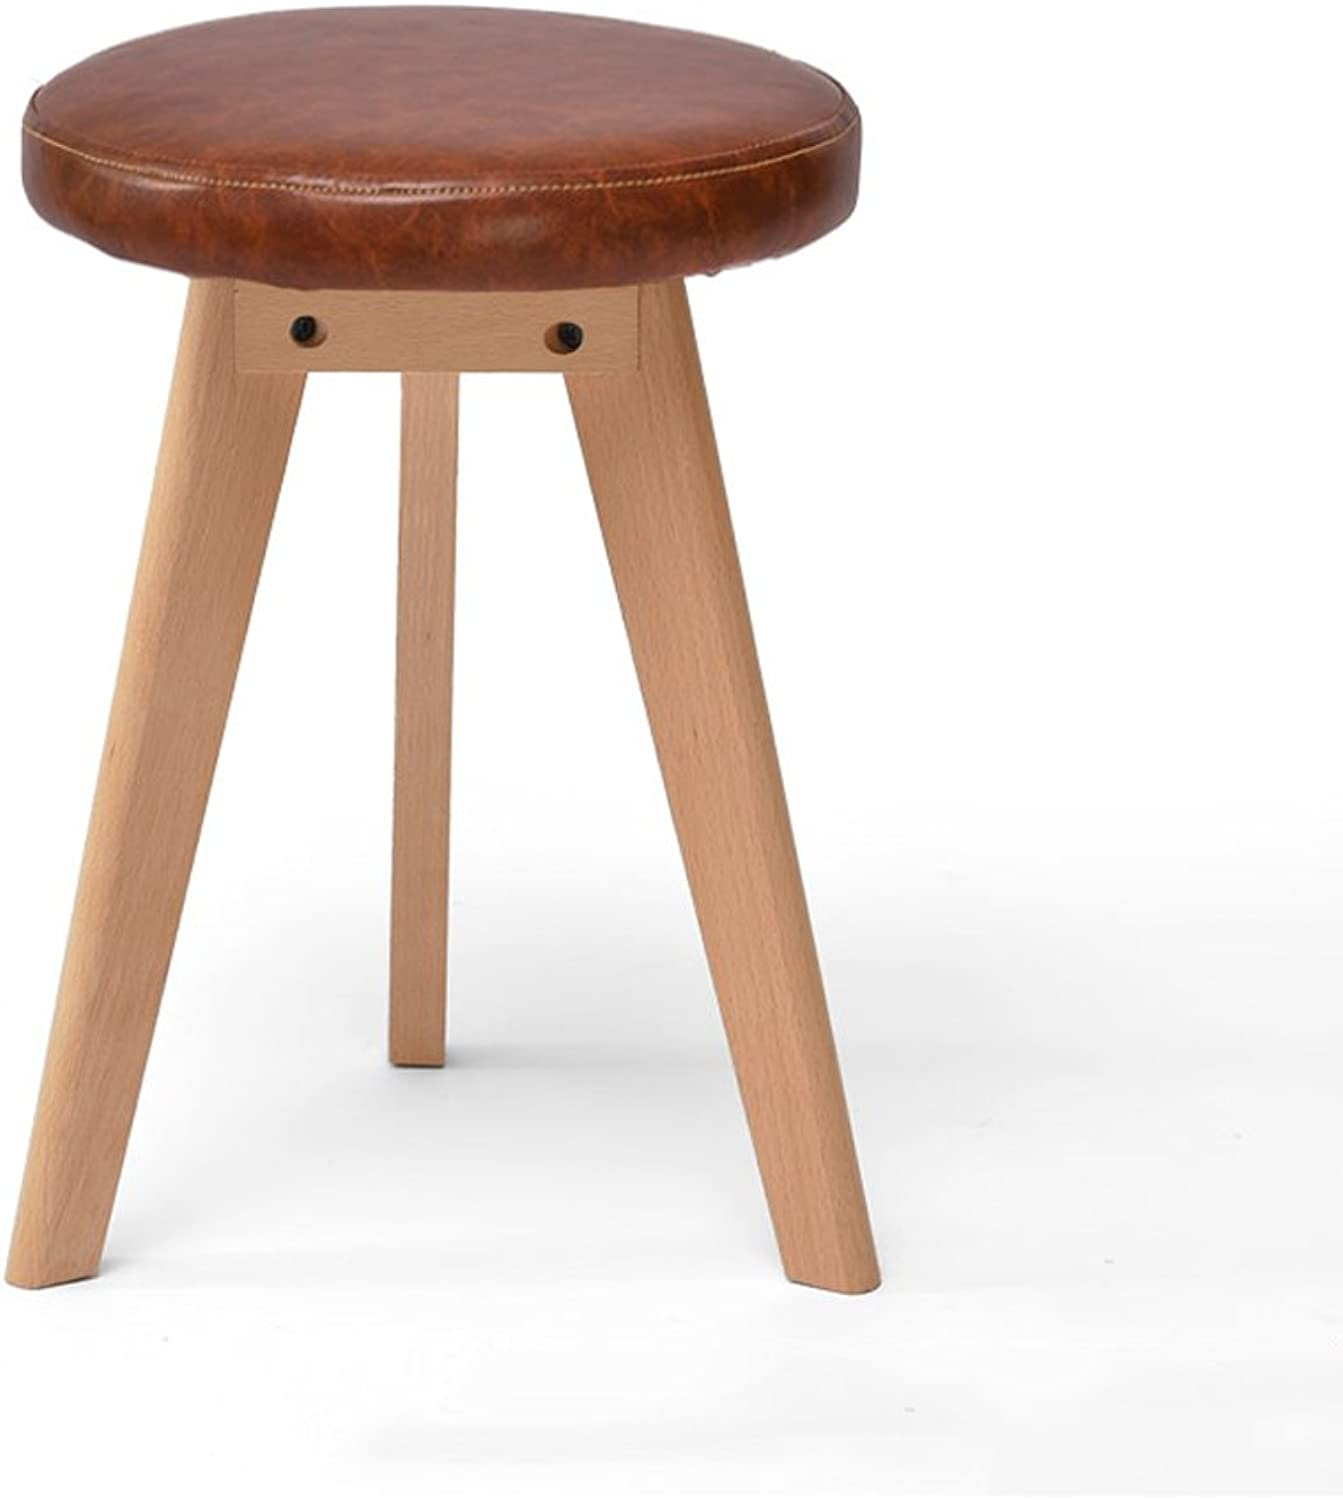 Solid Wood Stool, Fashion Creative Stool, Fabric Makeup Stool, Home Table And Stool, Nordic Small Bench, Solid Wood Stool Legs, Removable And Washable Stool Sets, To Adapt To A Variety Of Scenes (L  40cm, W  40cm, H  45cm) ( color   E )